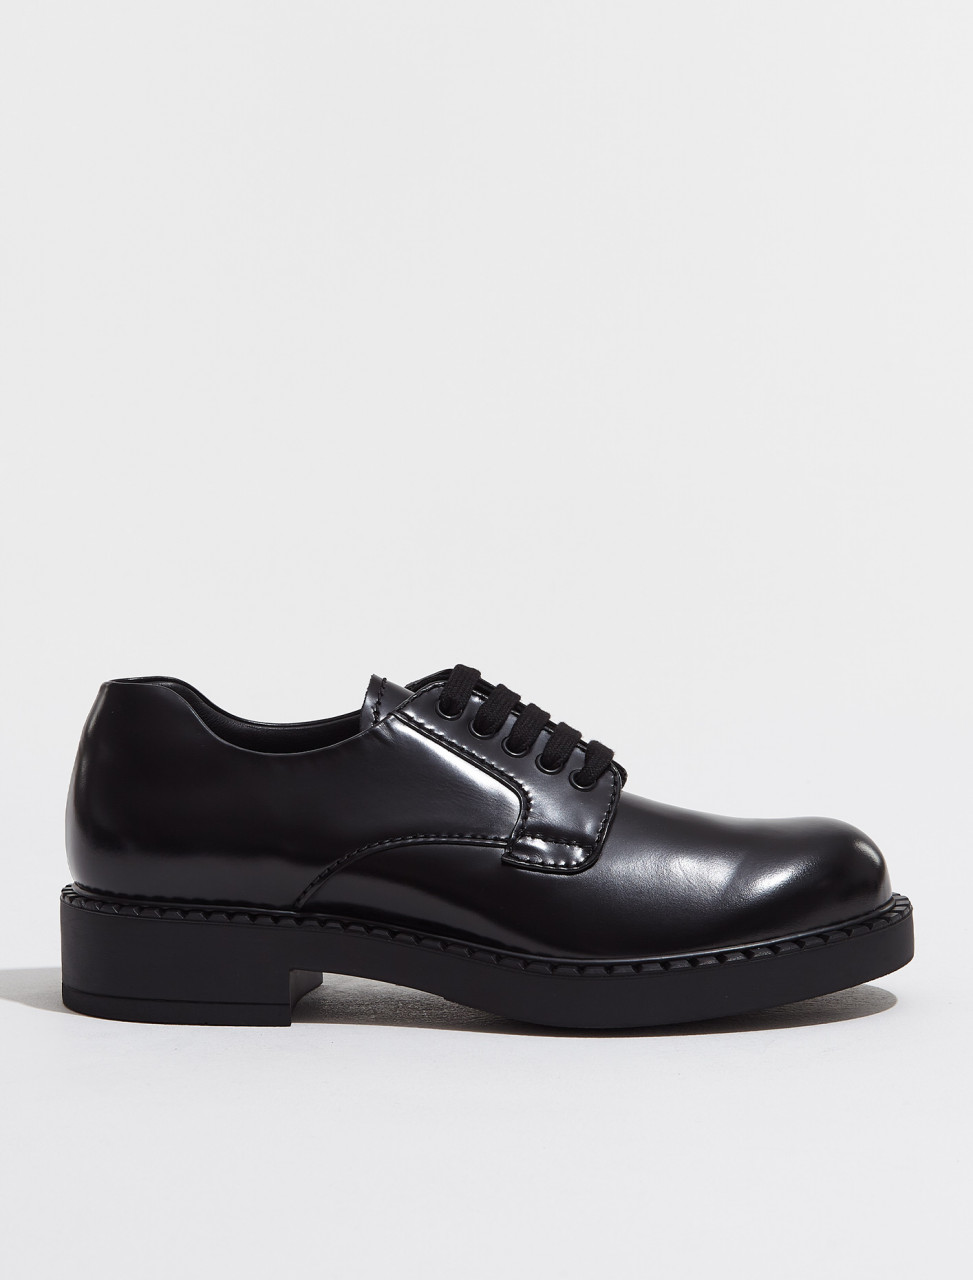 2EE345_055_F0002 PRADA BRUSHED LEATHER DERBY SHOES IN BLACK